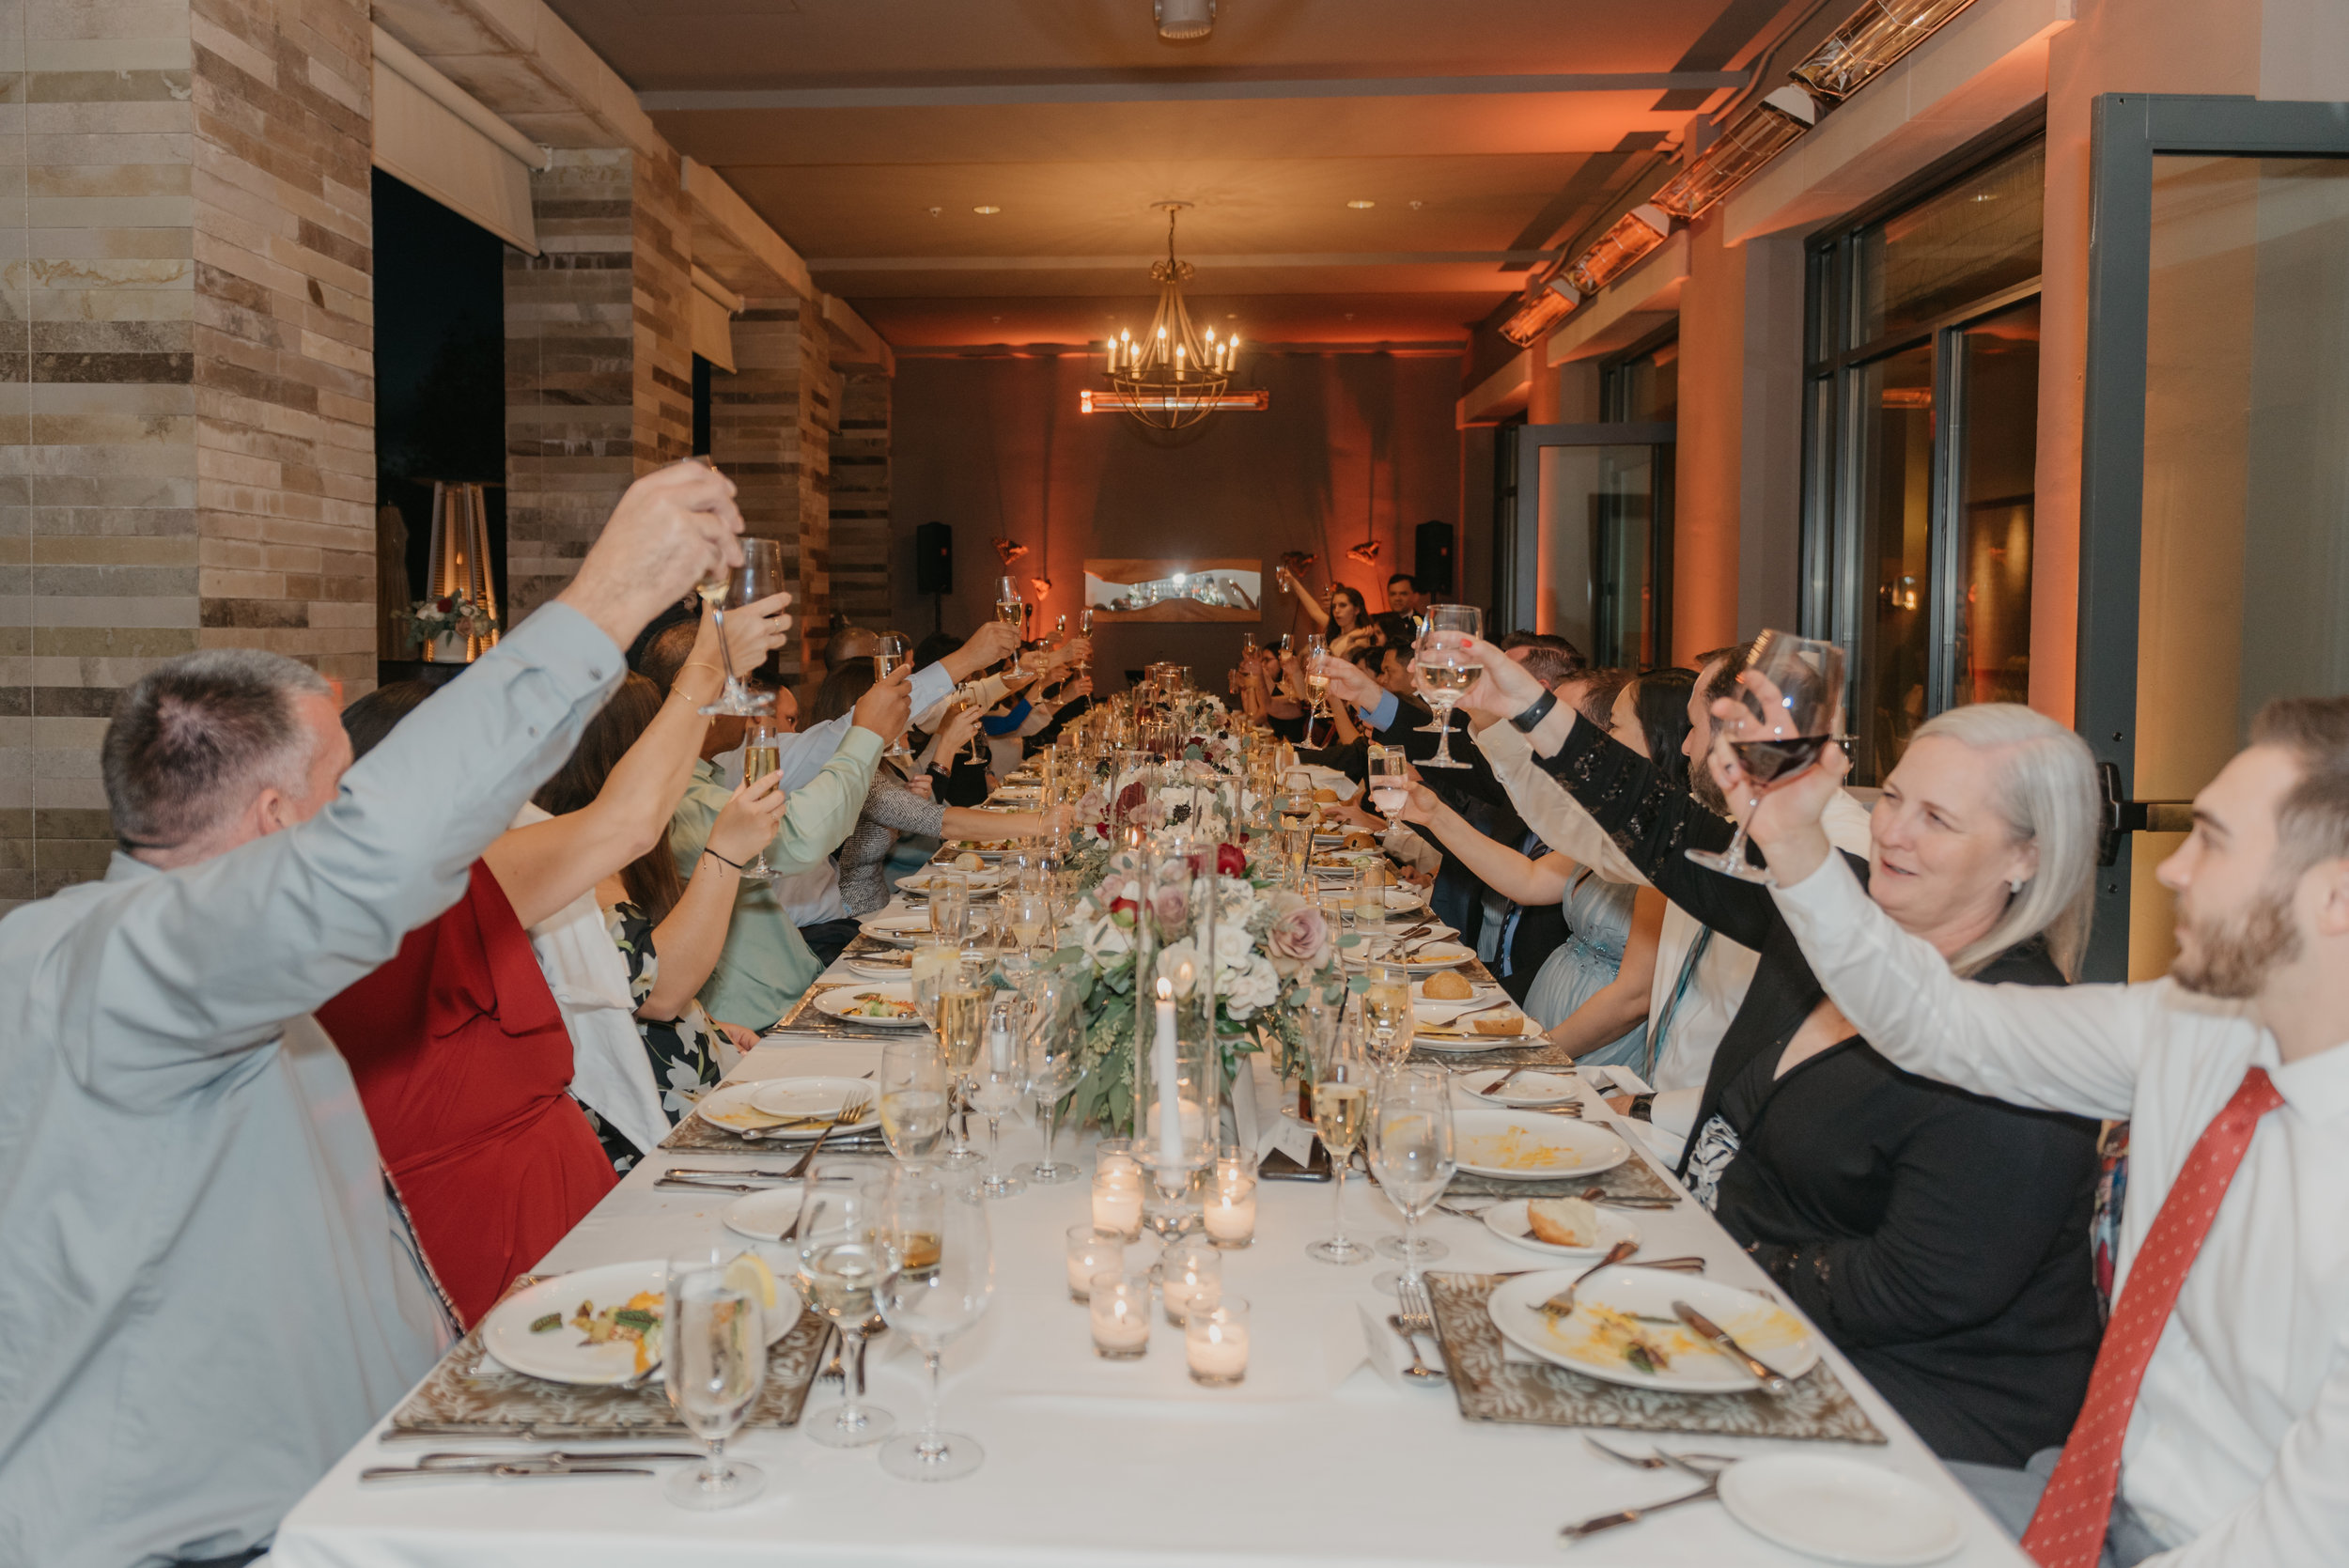 A long table full of people raising their glasses in cheers.